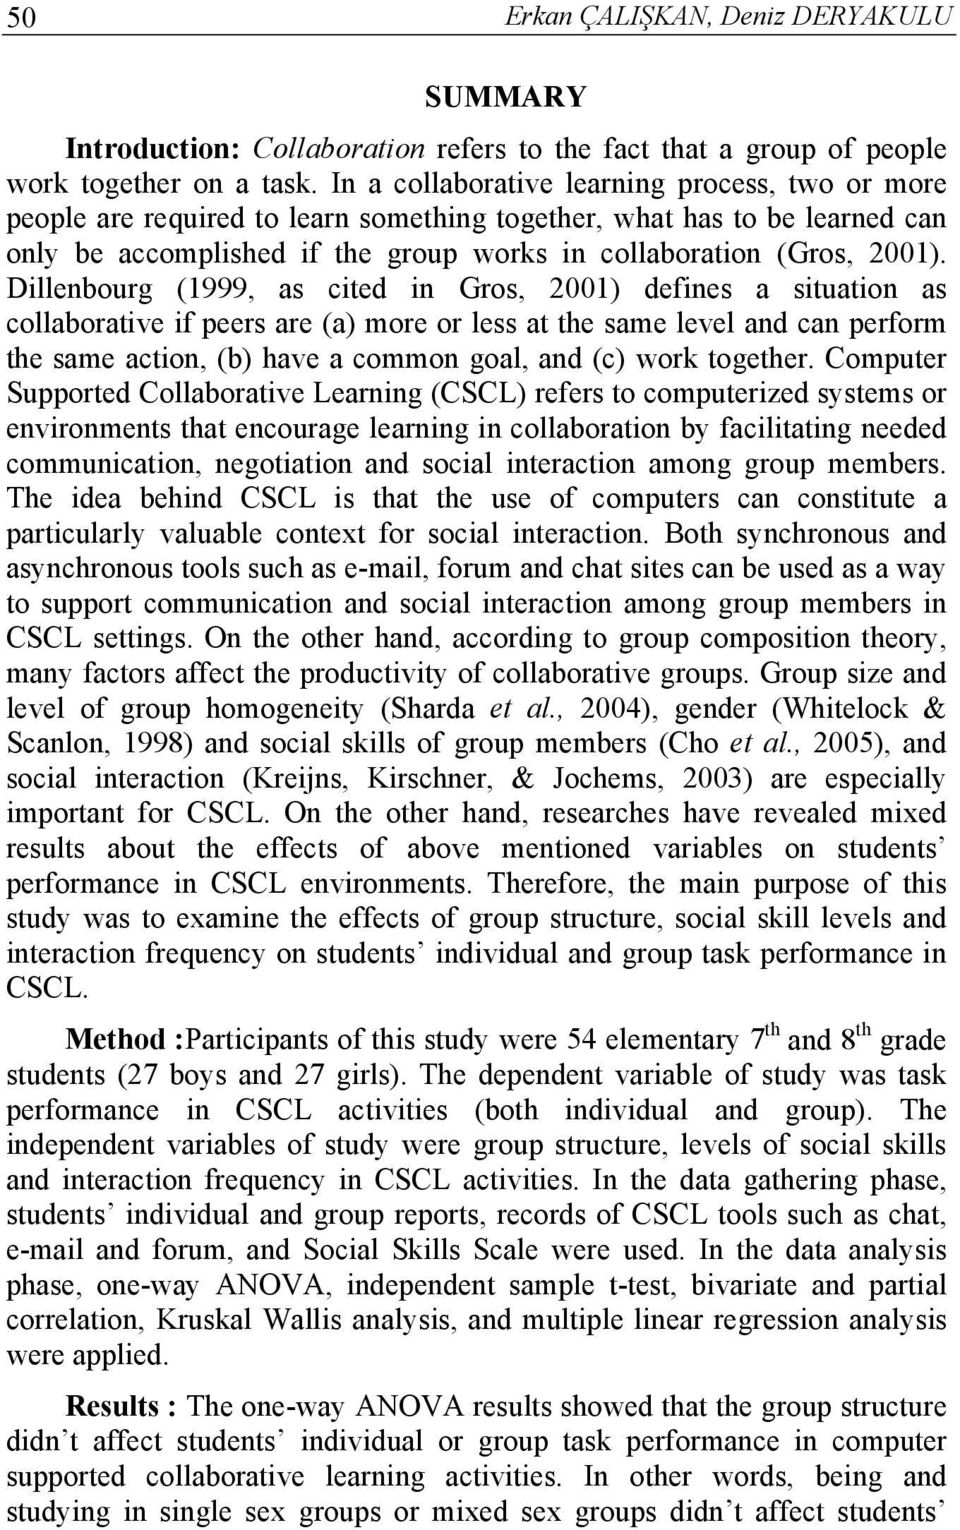 Dillenbourg (1999, as cited in Gros, 2001) defines a situation as collaborative if peers are (a) more or less at the same level and can perform the same action, (b) have a common goal, and (c) work